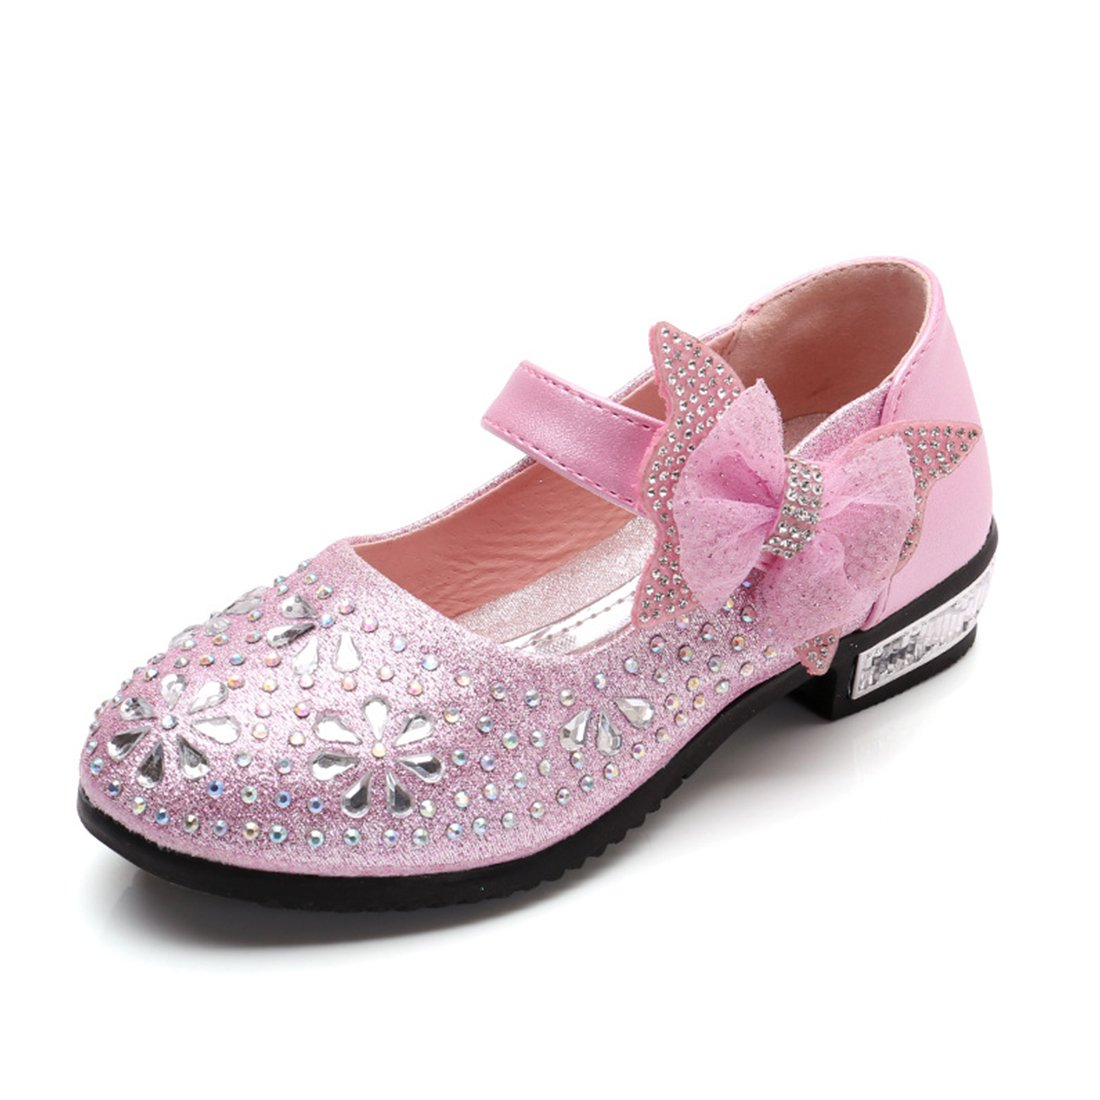 Little Girl's Princess Shoes Mary Jane Wedding Glitter Dance Party Shoes Low Heels Pink US 10 M